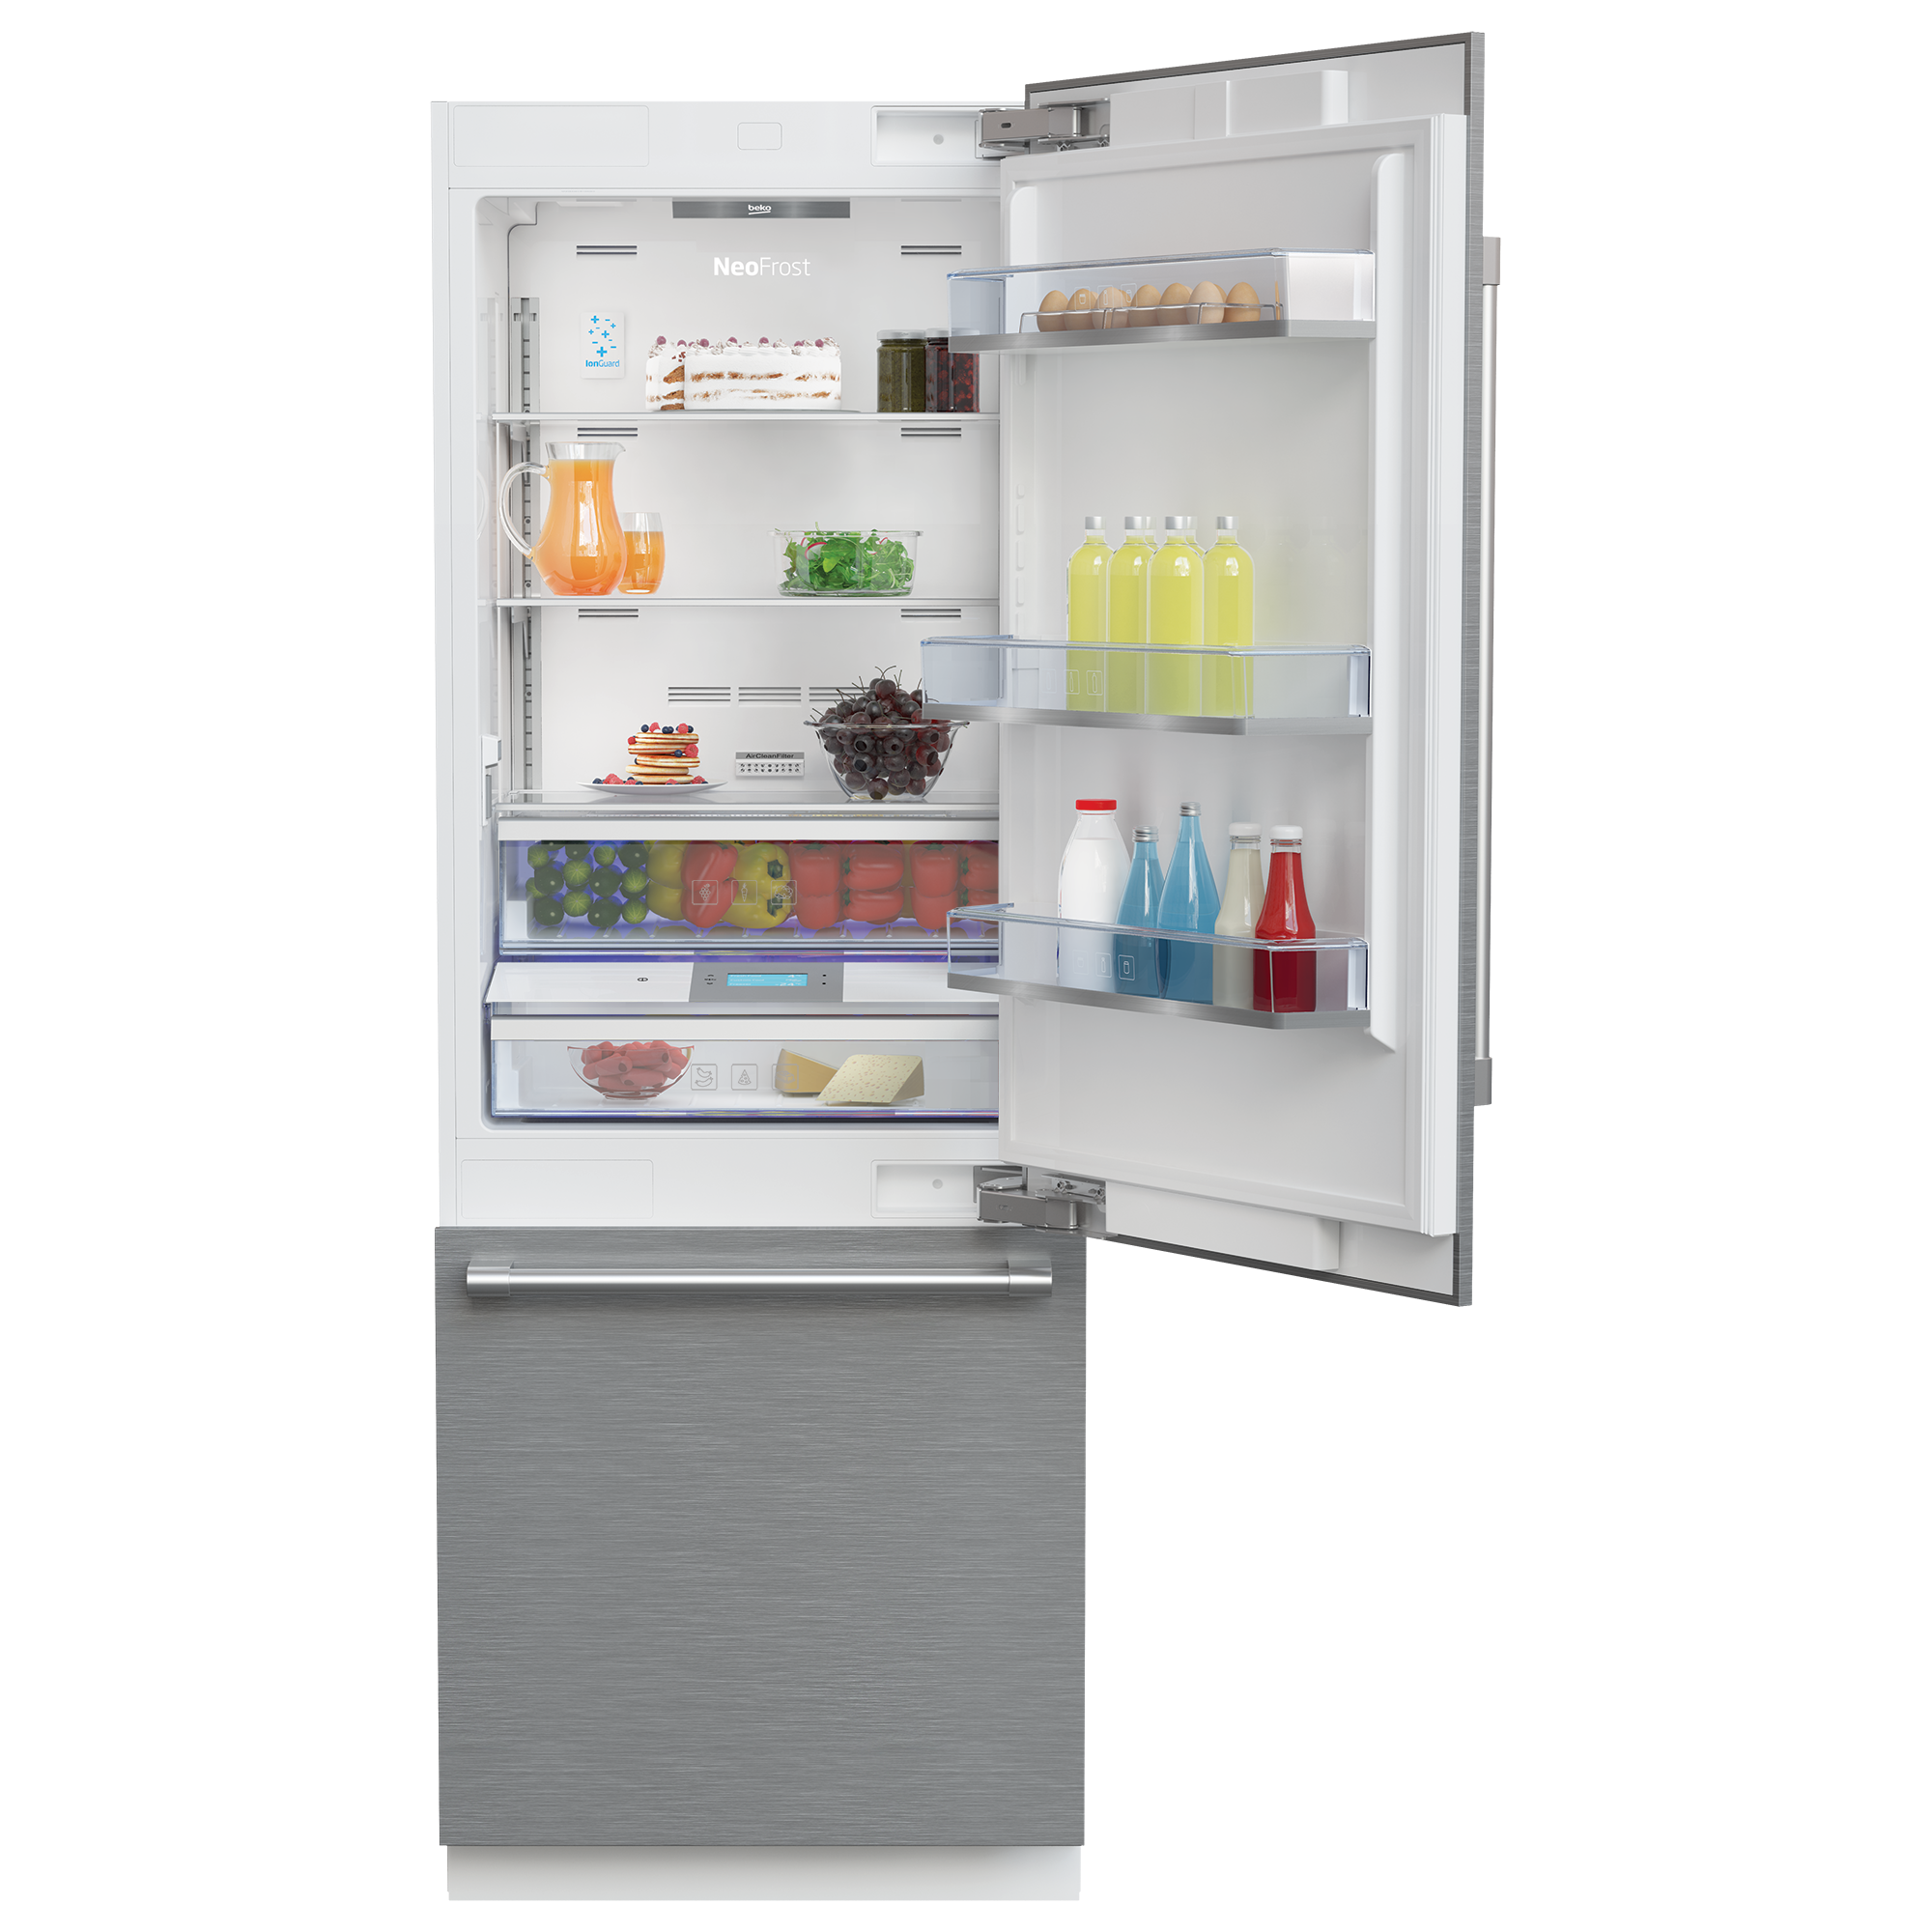 30 Freezer Bottom Built In Refrigerator With Auto Ice Maker And Internal Water Dispenser Bbbf3019imwe Beko